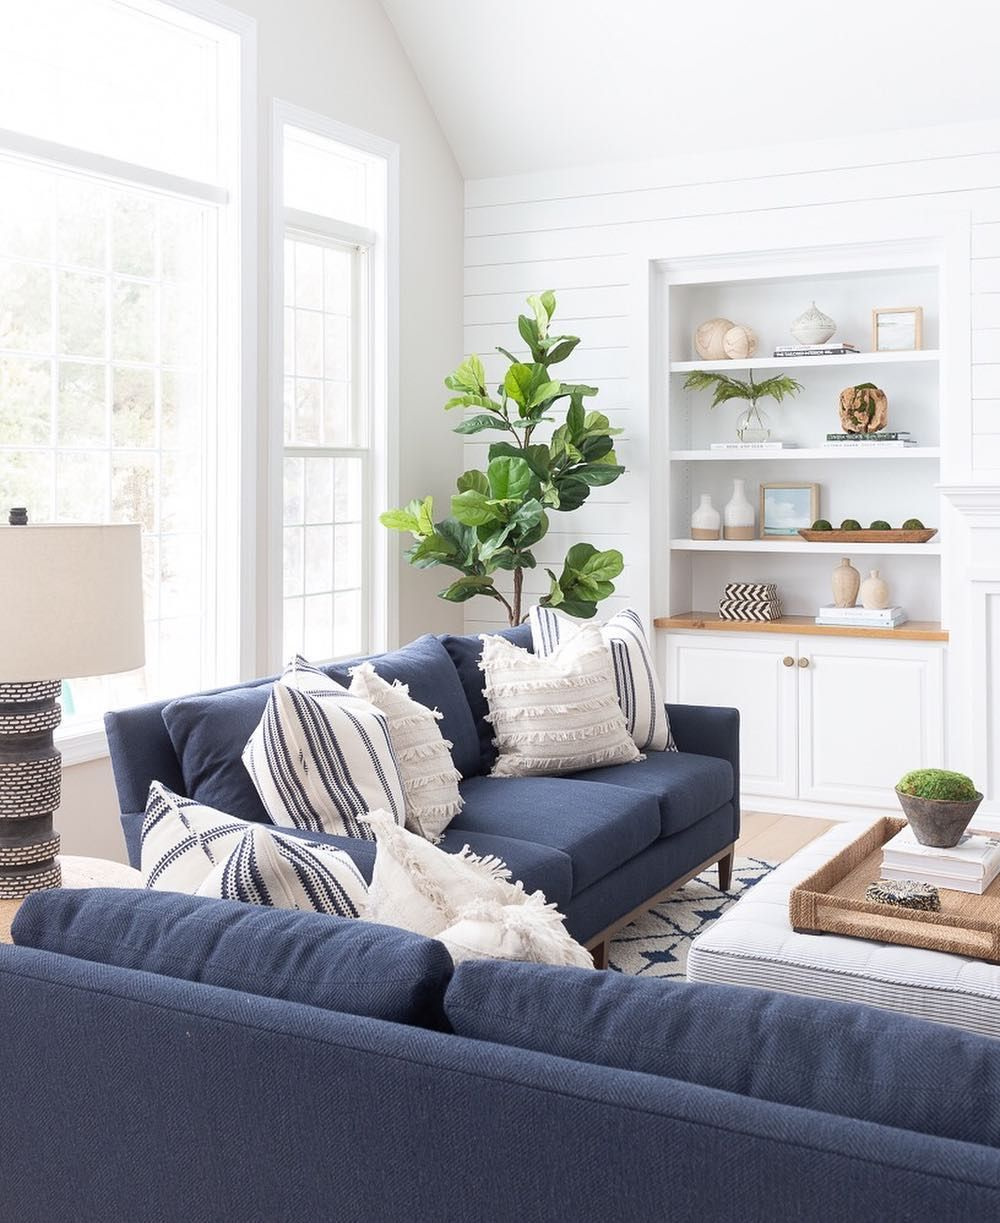 Pin By Michelle Ternullo On Home Design Blue Living Room Decor Navy Sofa Living Room Blue Sofas Living Room